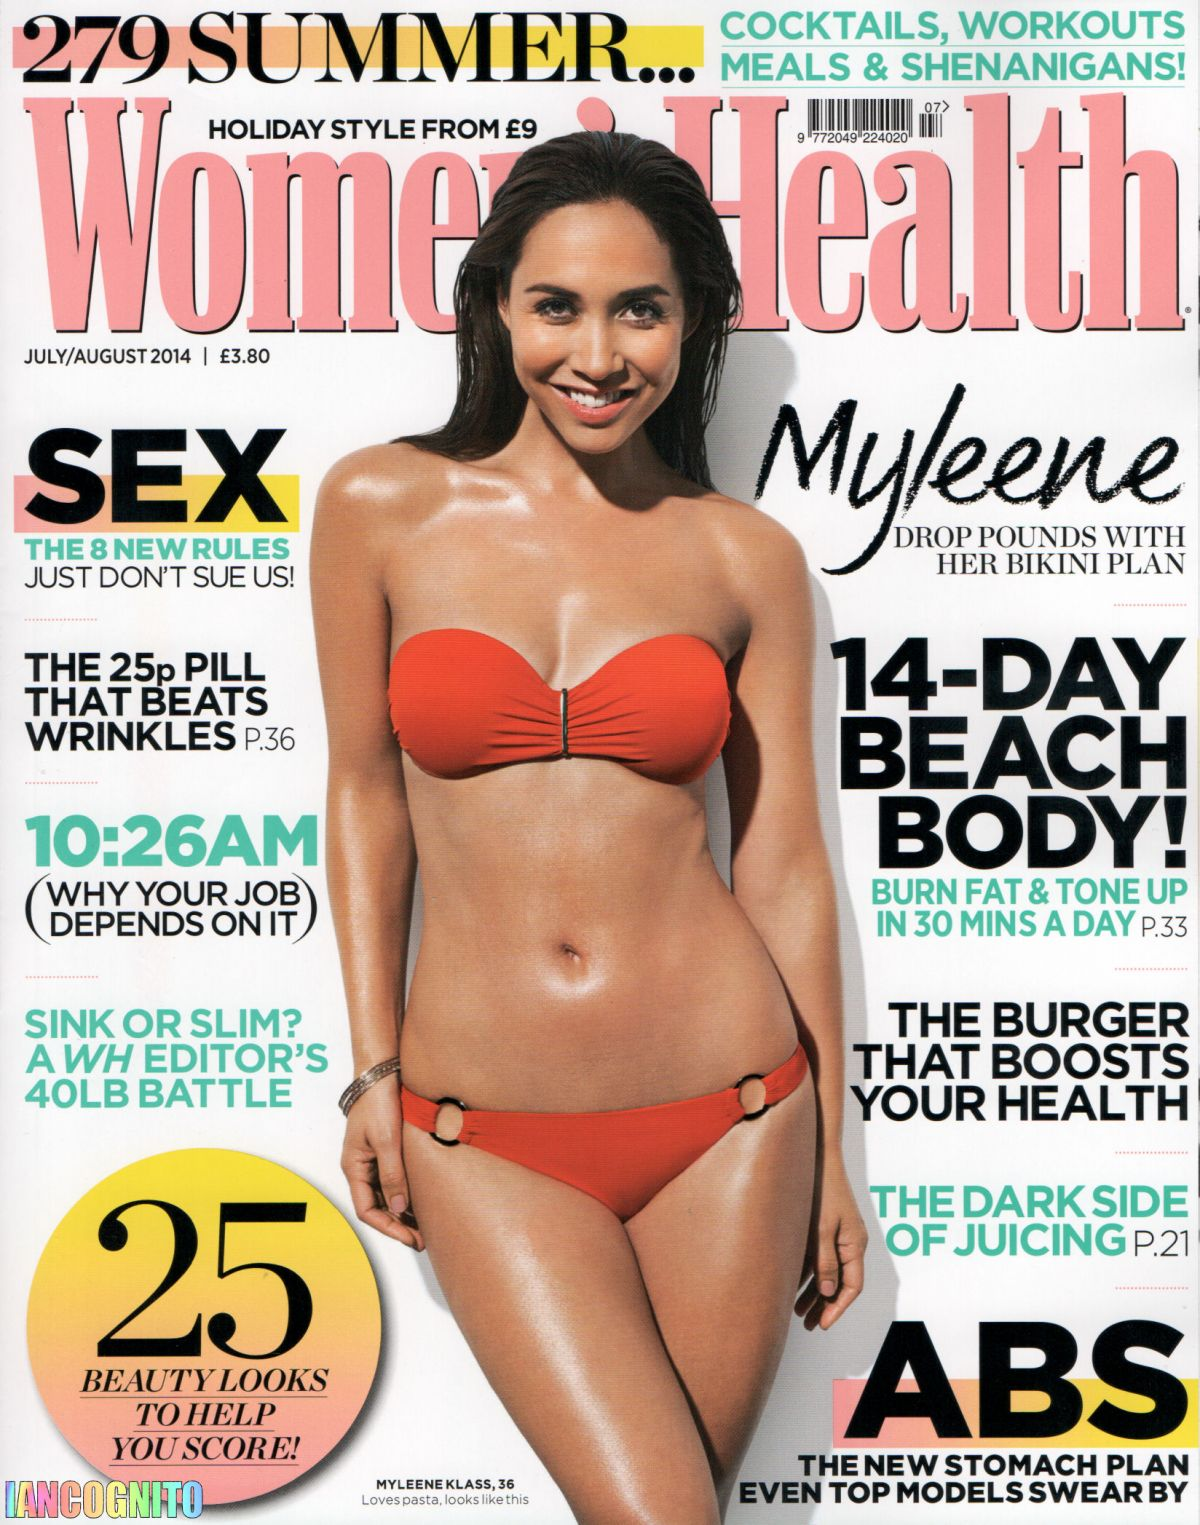 MYLEENE KLASS in Women's Health Magazine, July/August 2014 Issue